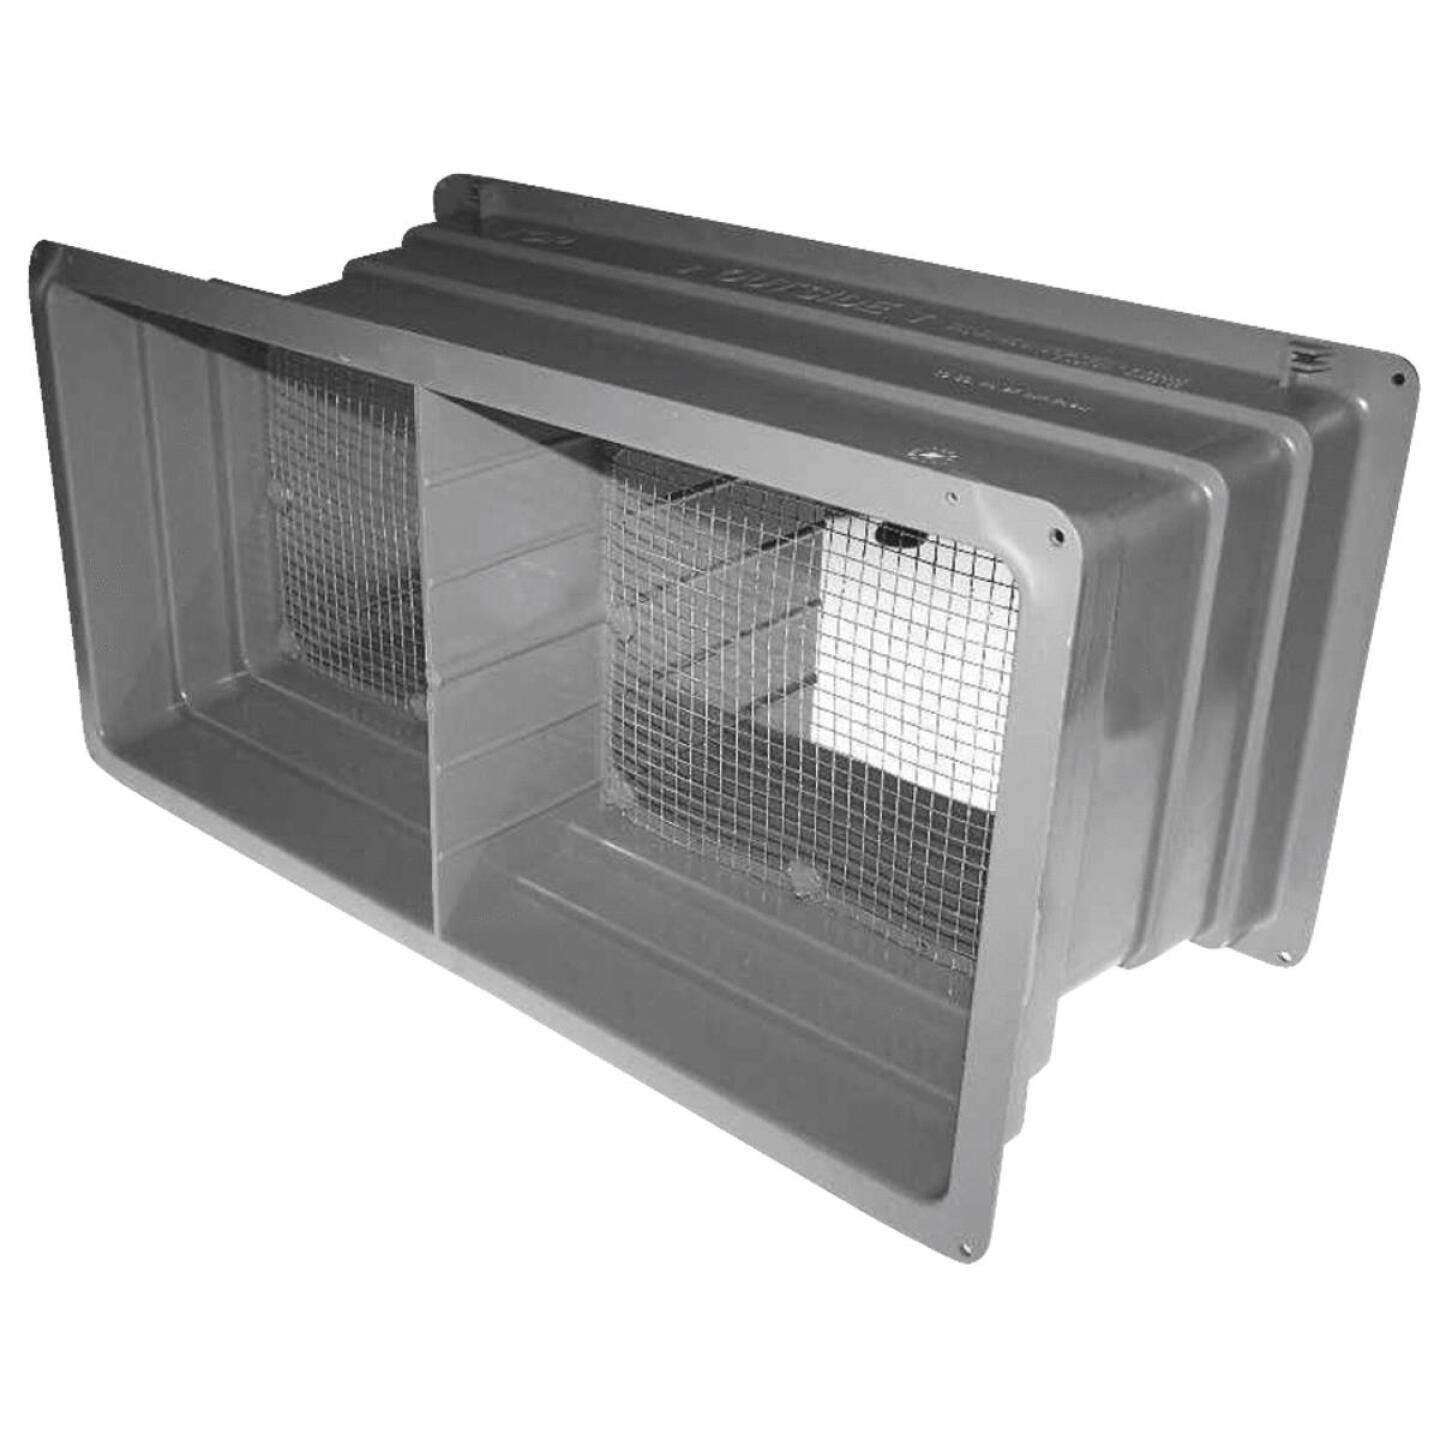 NorWesco DLX 8 In. x 16 In. Plastic Manual Foundation Vent Image 1